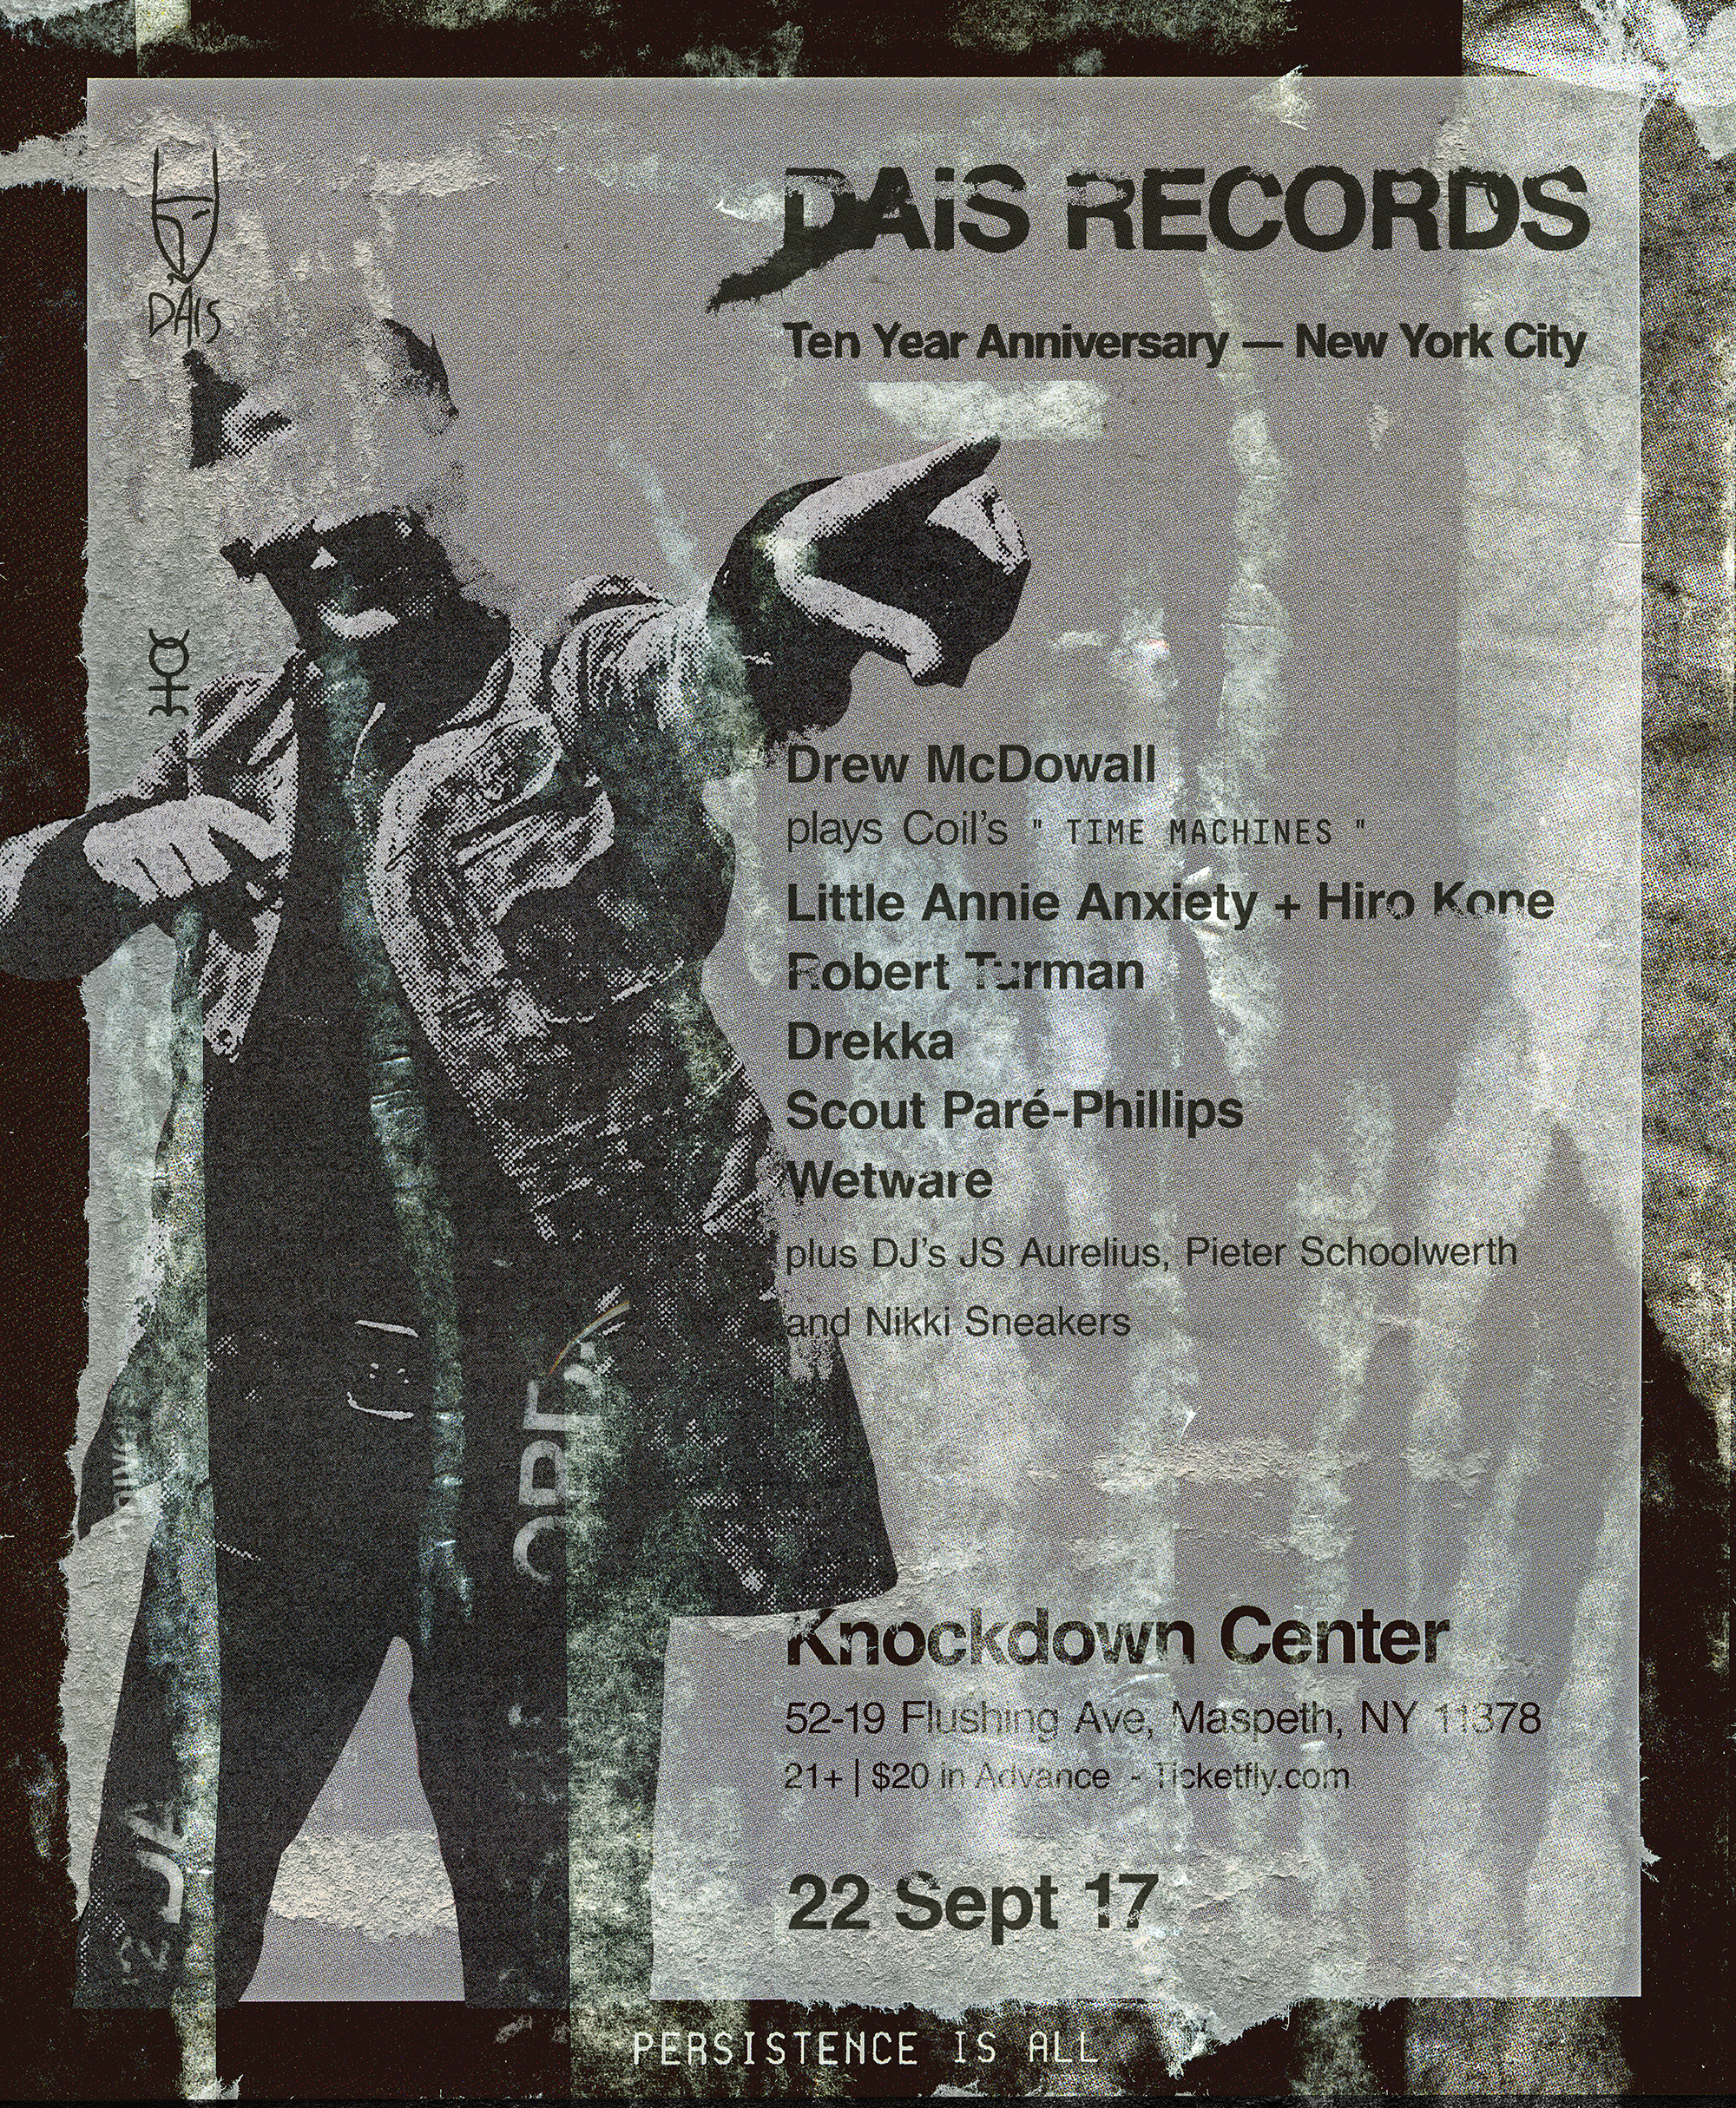 dais-records-10-year---new-york---v3---web-proof_2000.jpg